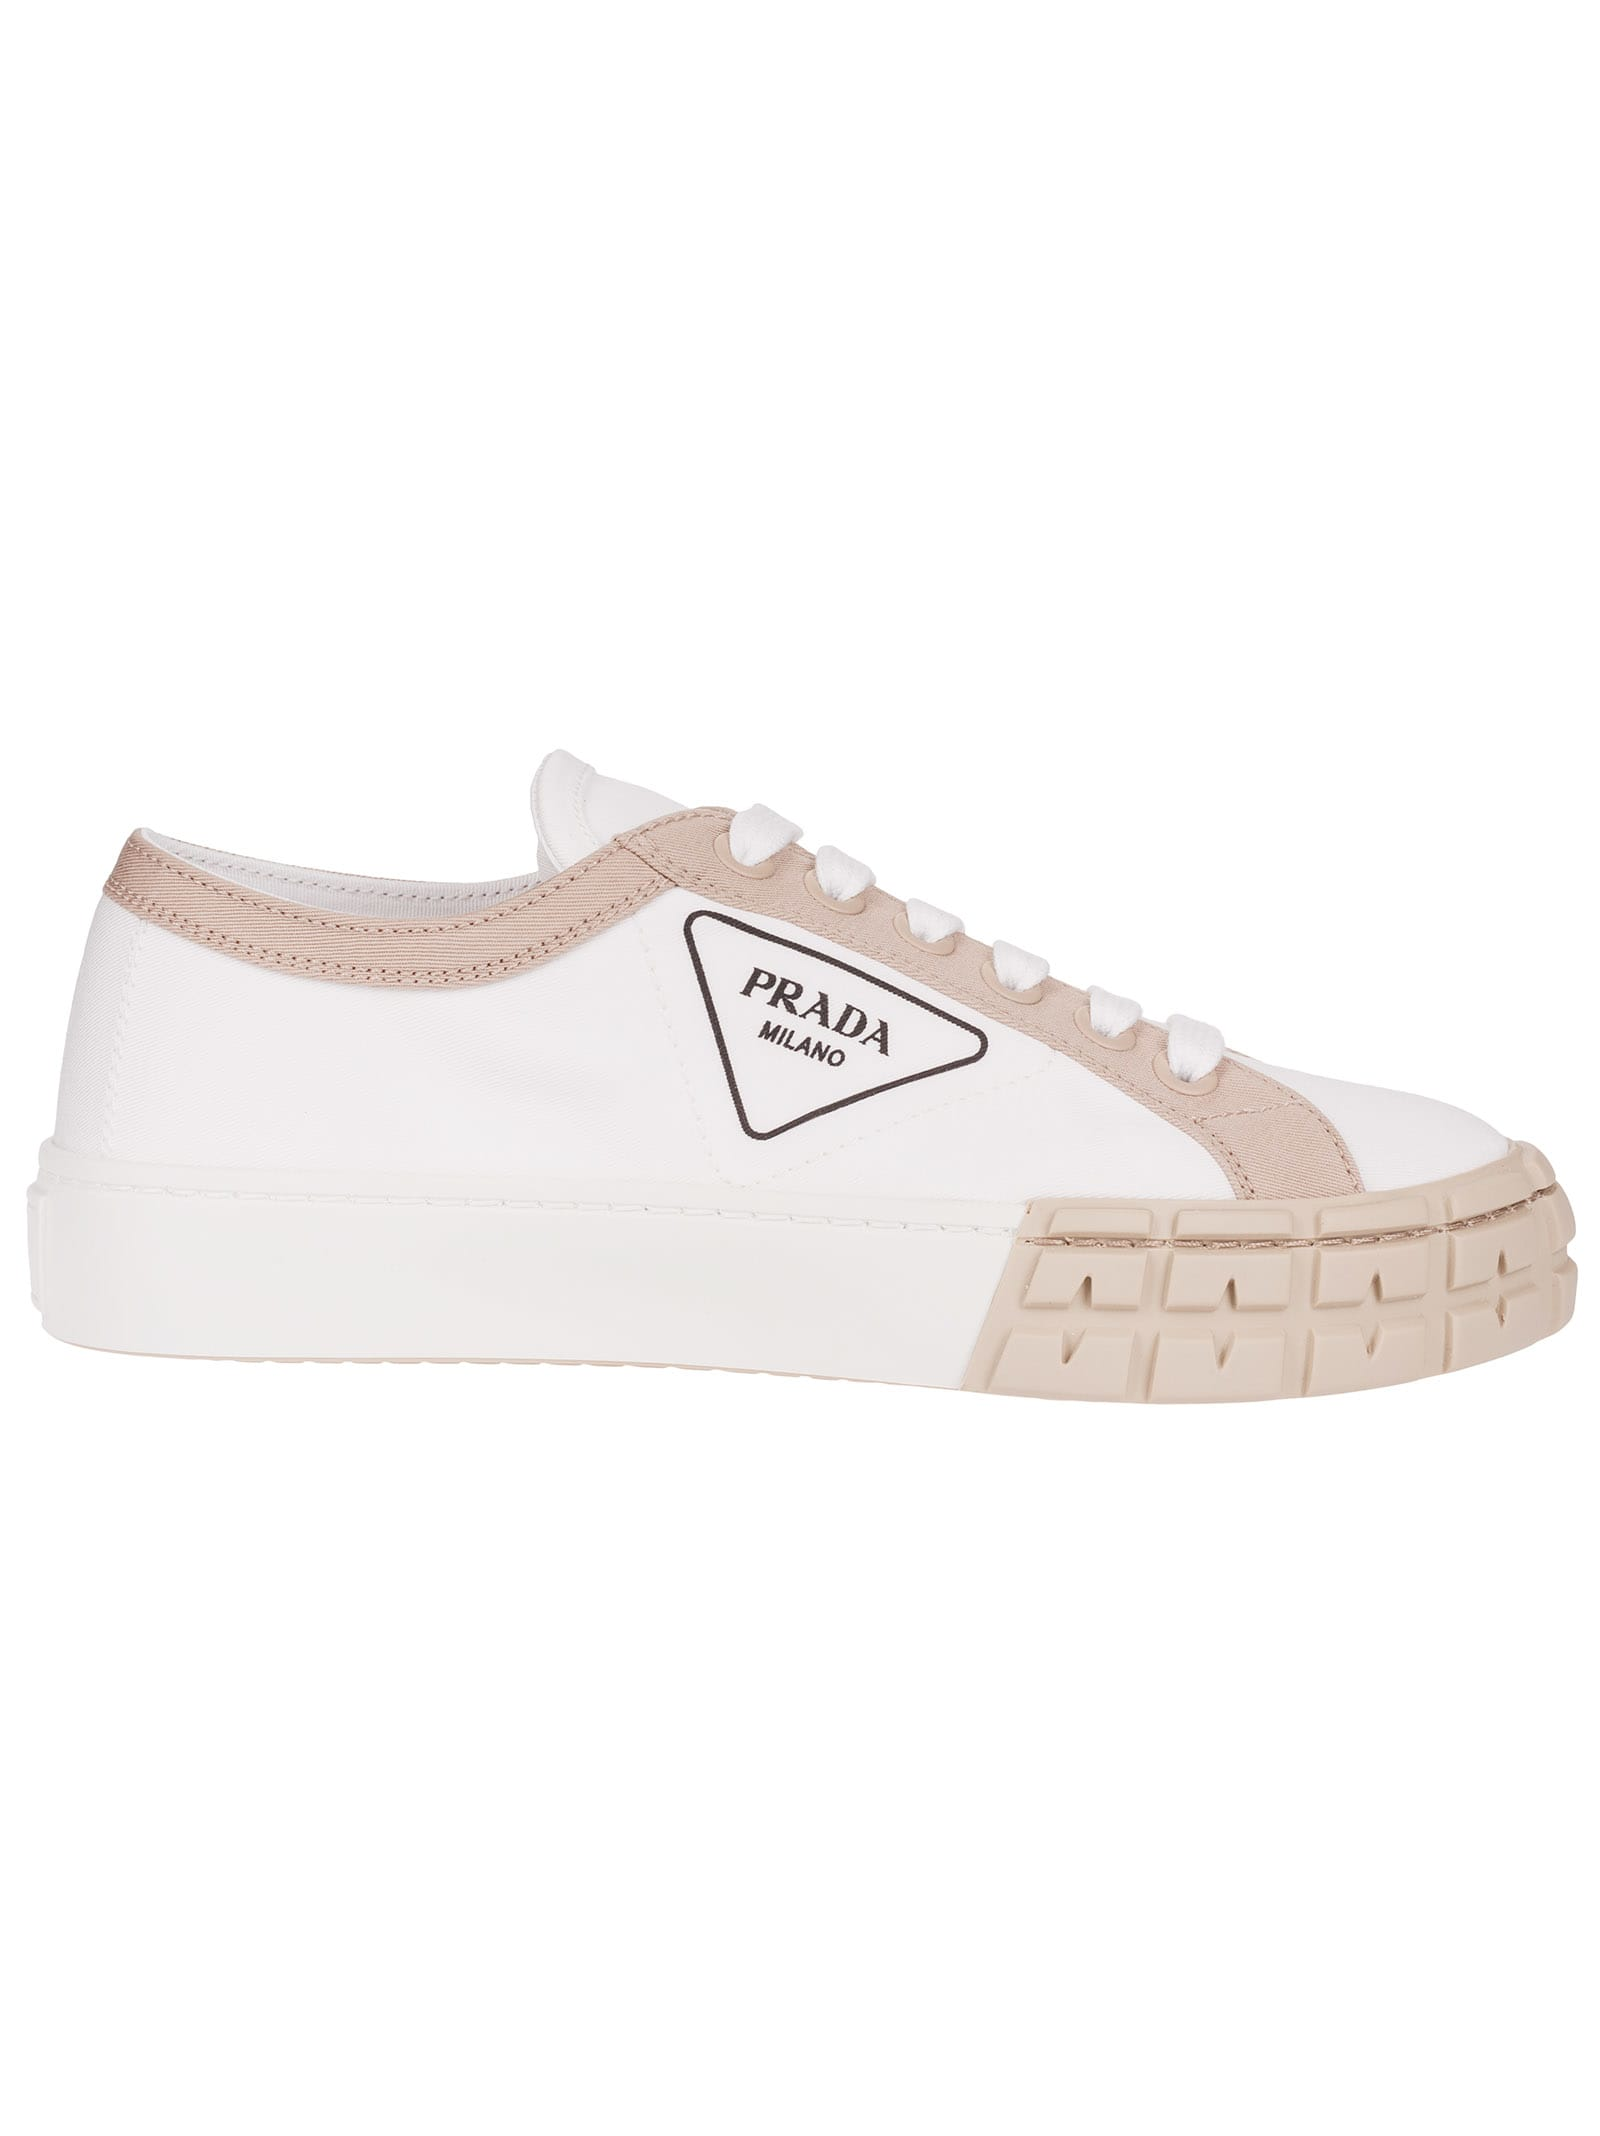 PRADA PATCHED LOGO SNEAKERS